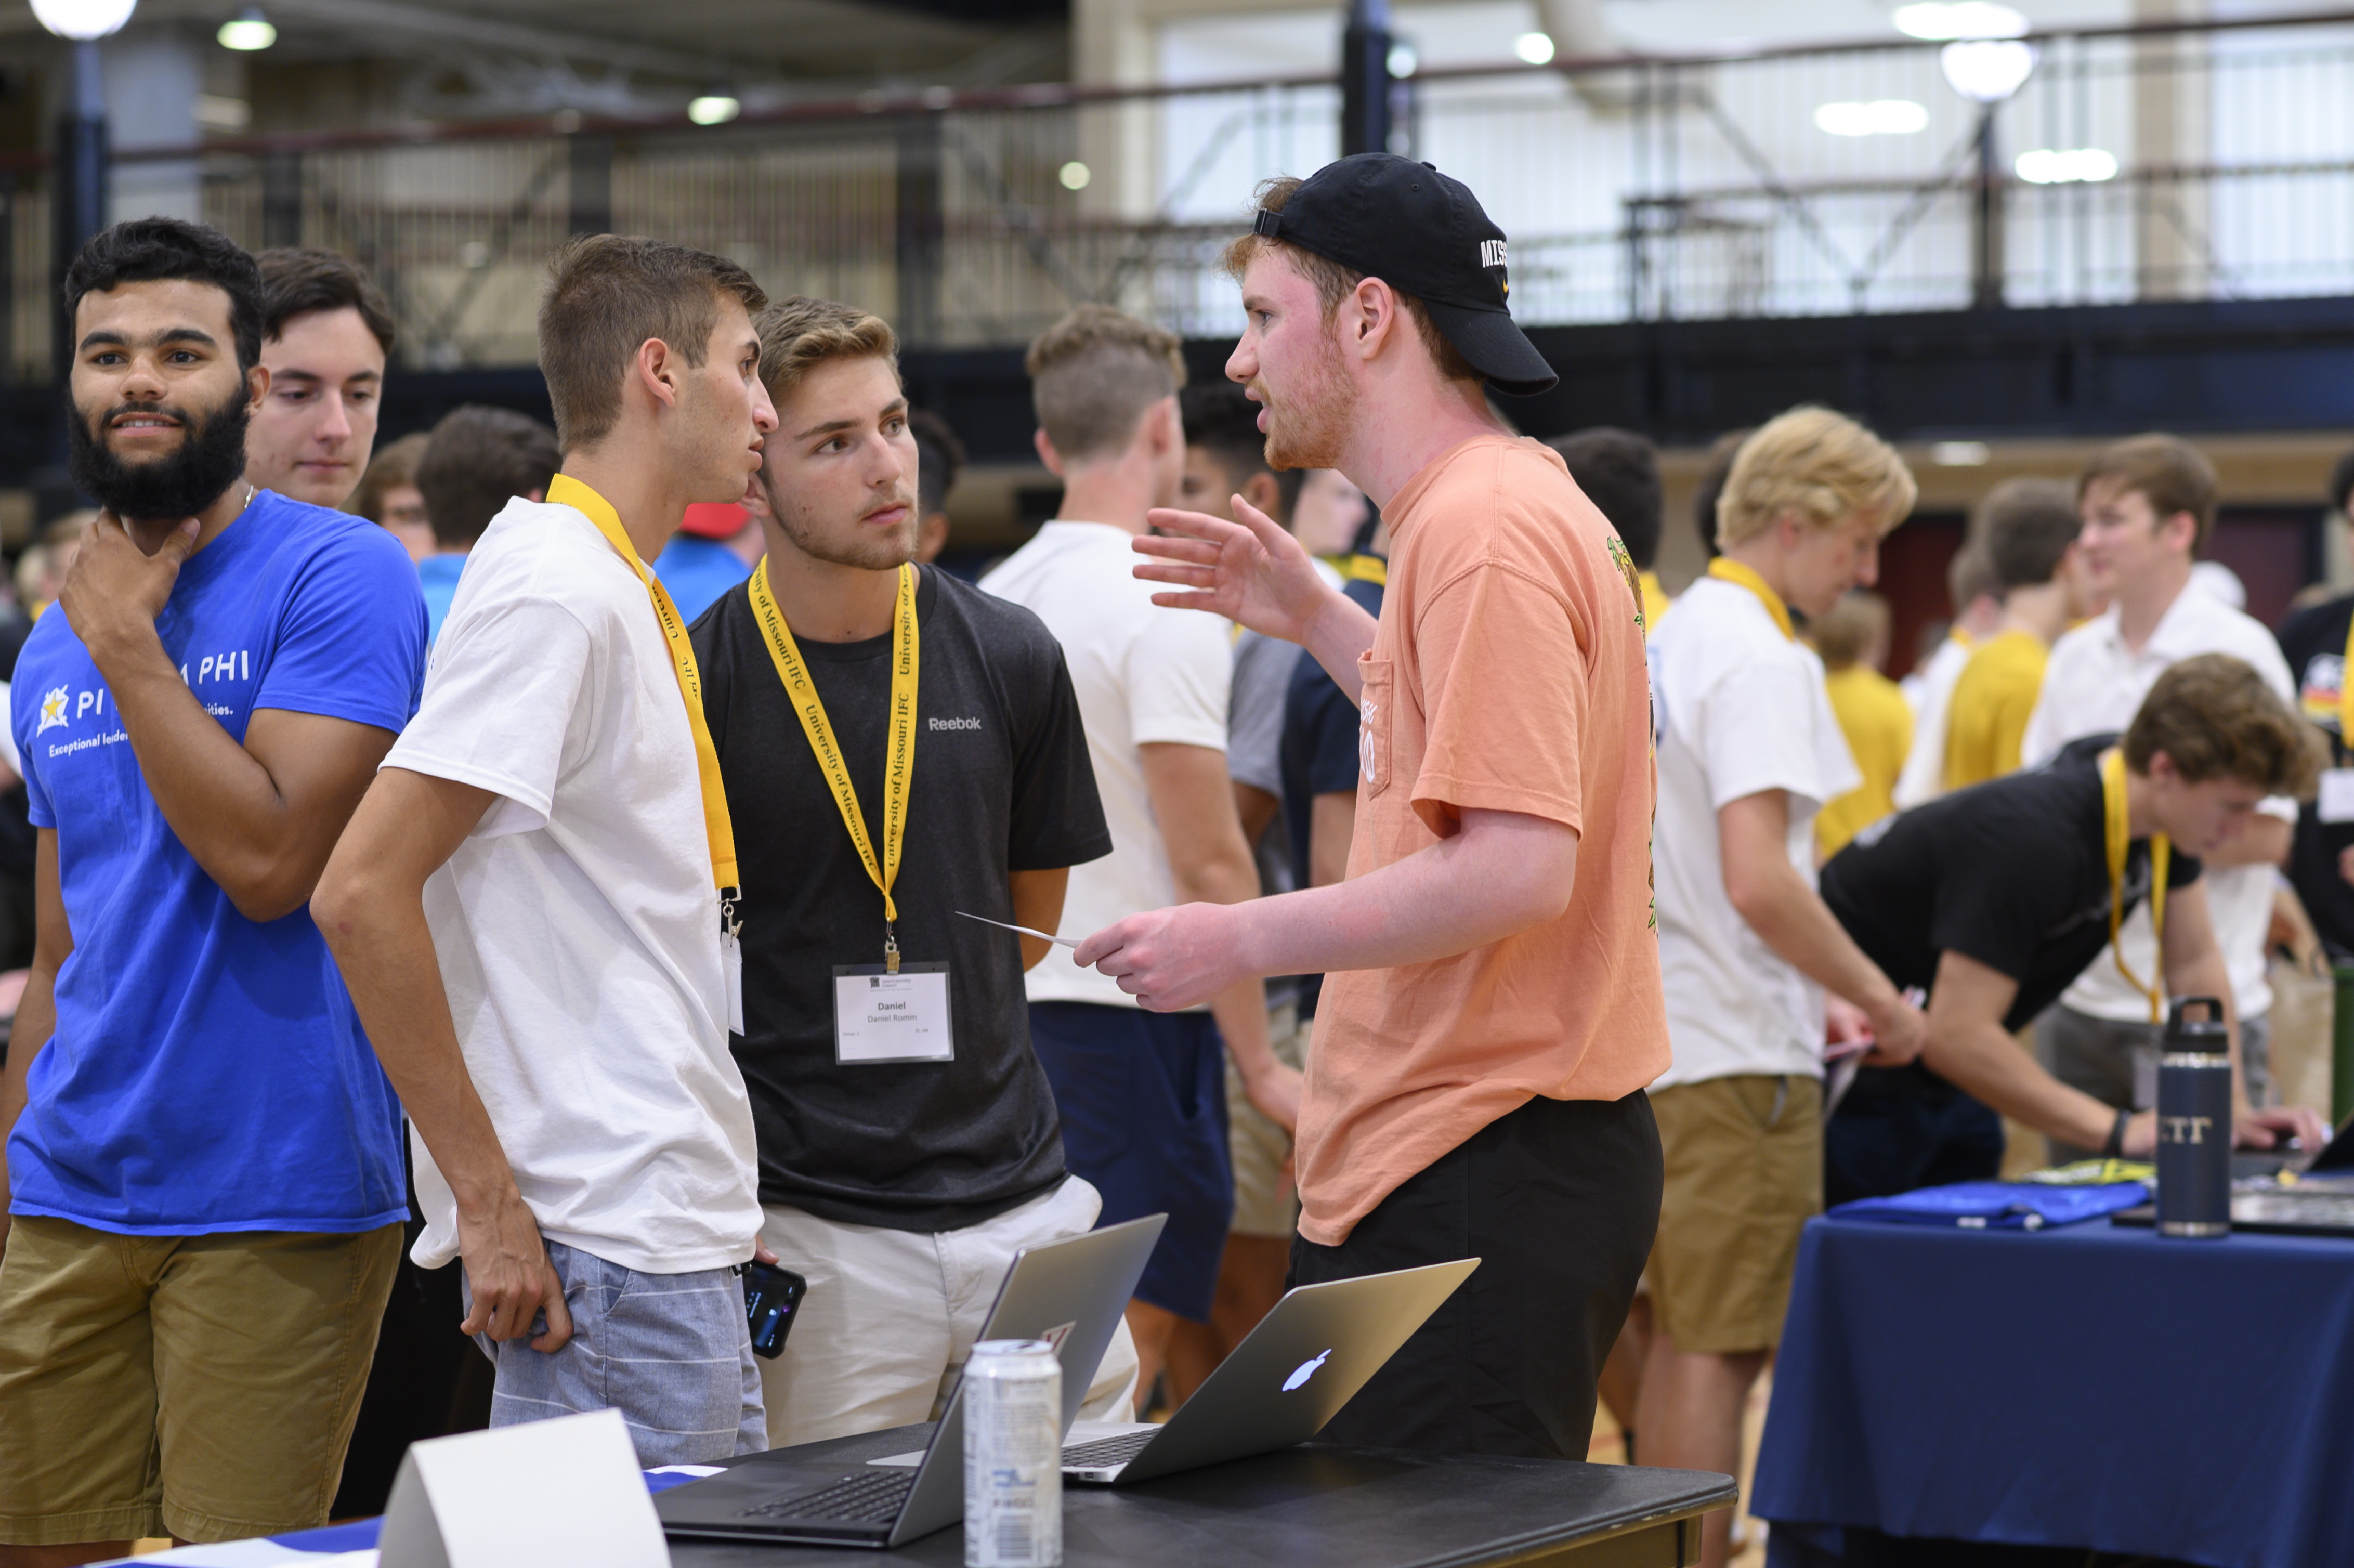 Interfraternity Council recruiting at the MizzouRec on Wednesday Aug. 14, 2019. Sam O'Keefe/University of Missouri